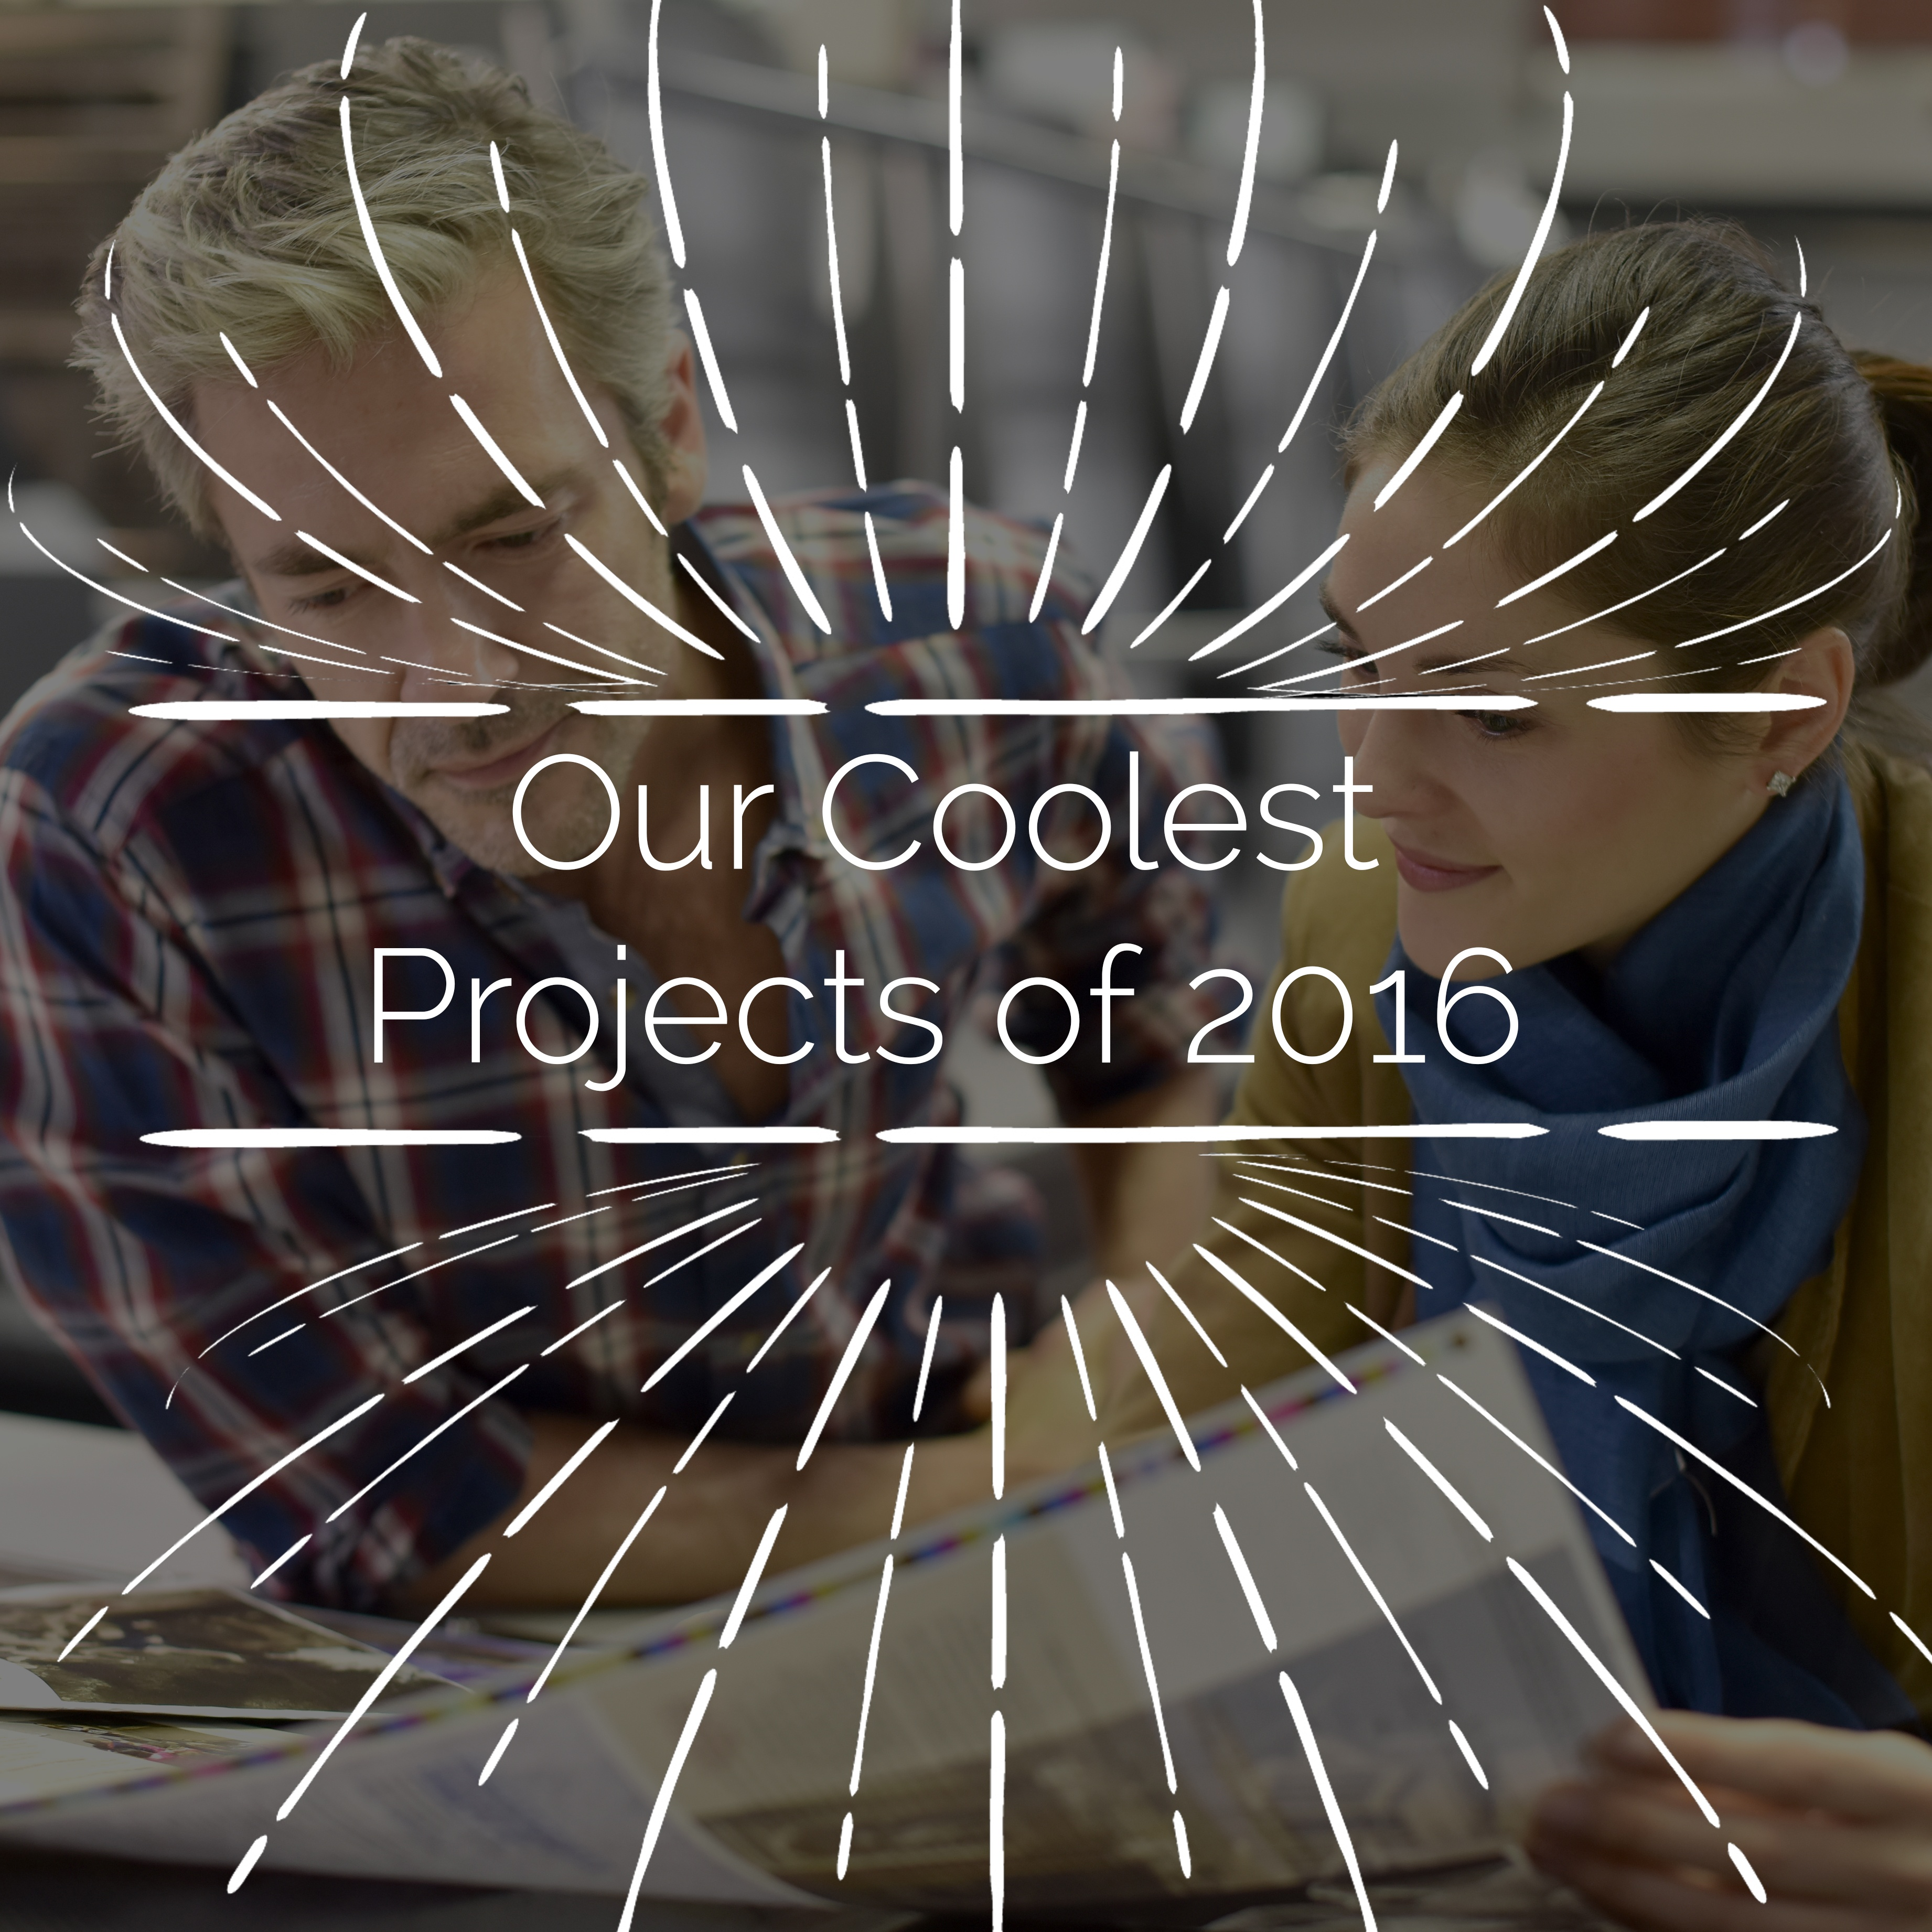 coolest projects of 2016.jpg